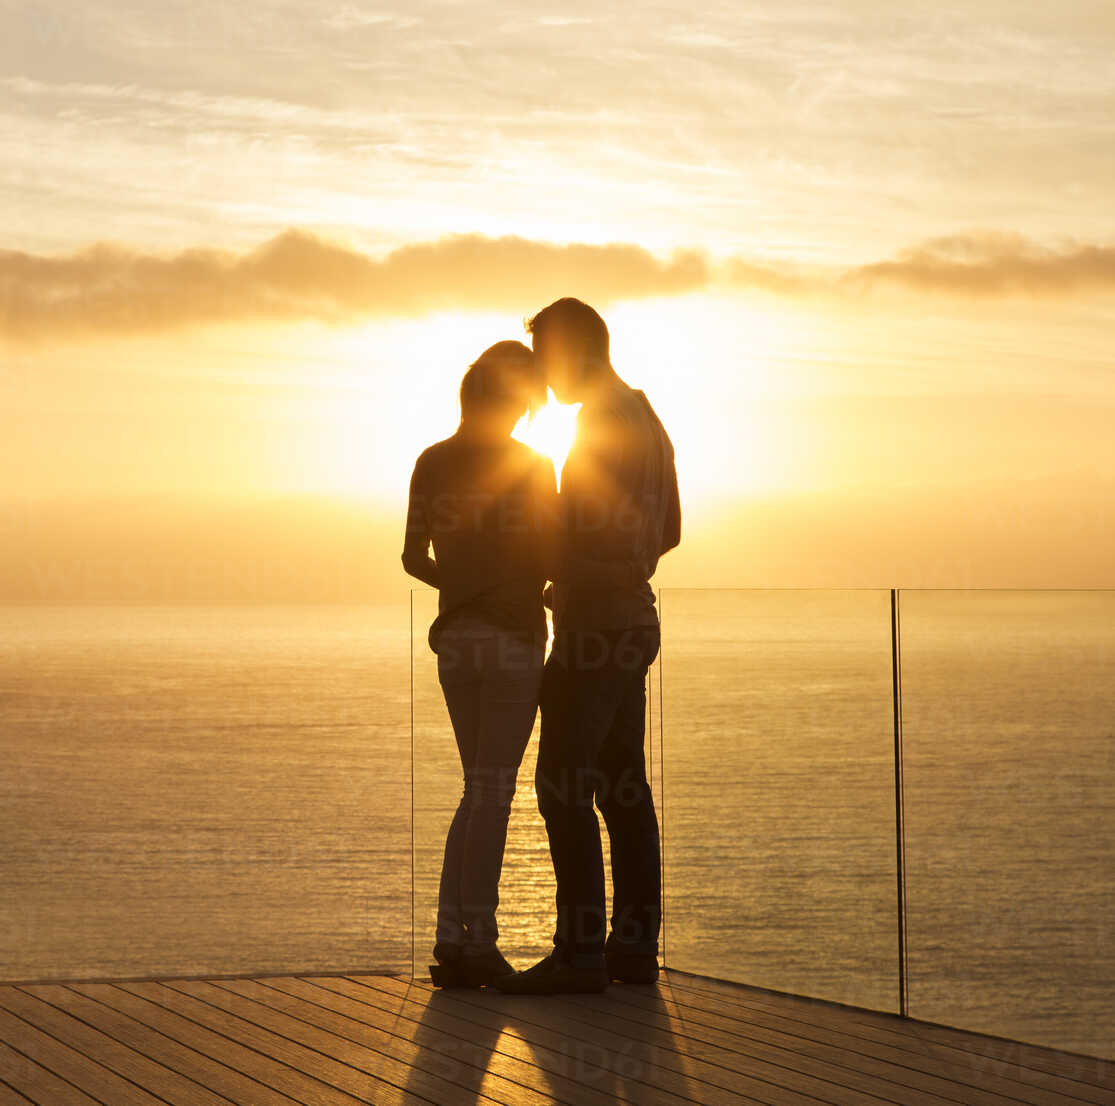 Silhouette of couple at sunset over ocean - CAIF17142 - Astronaut Images/Westend61